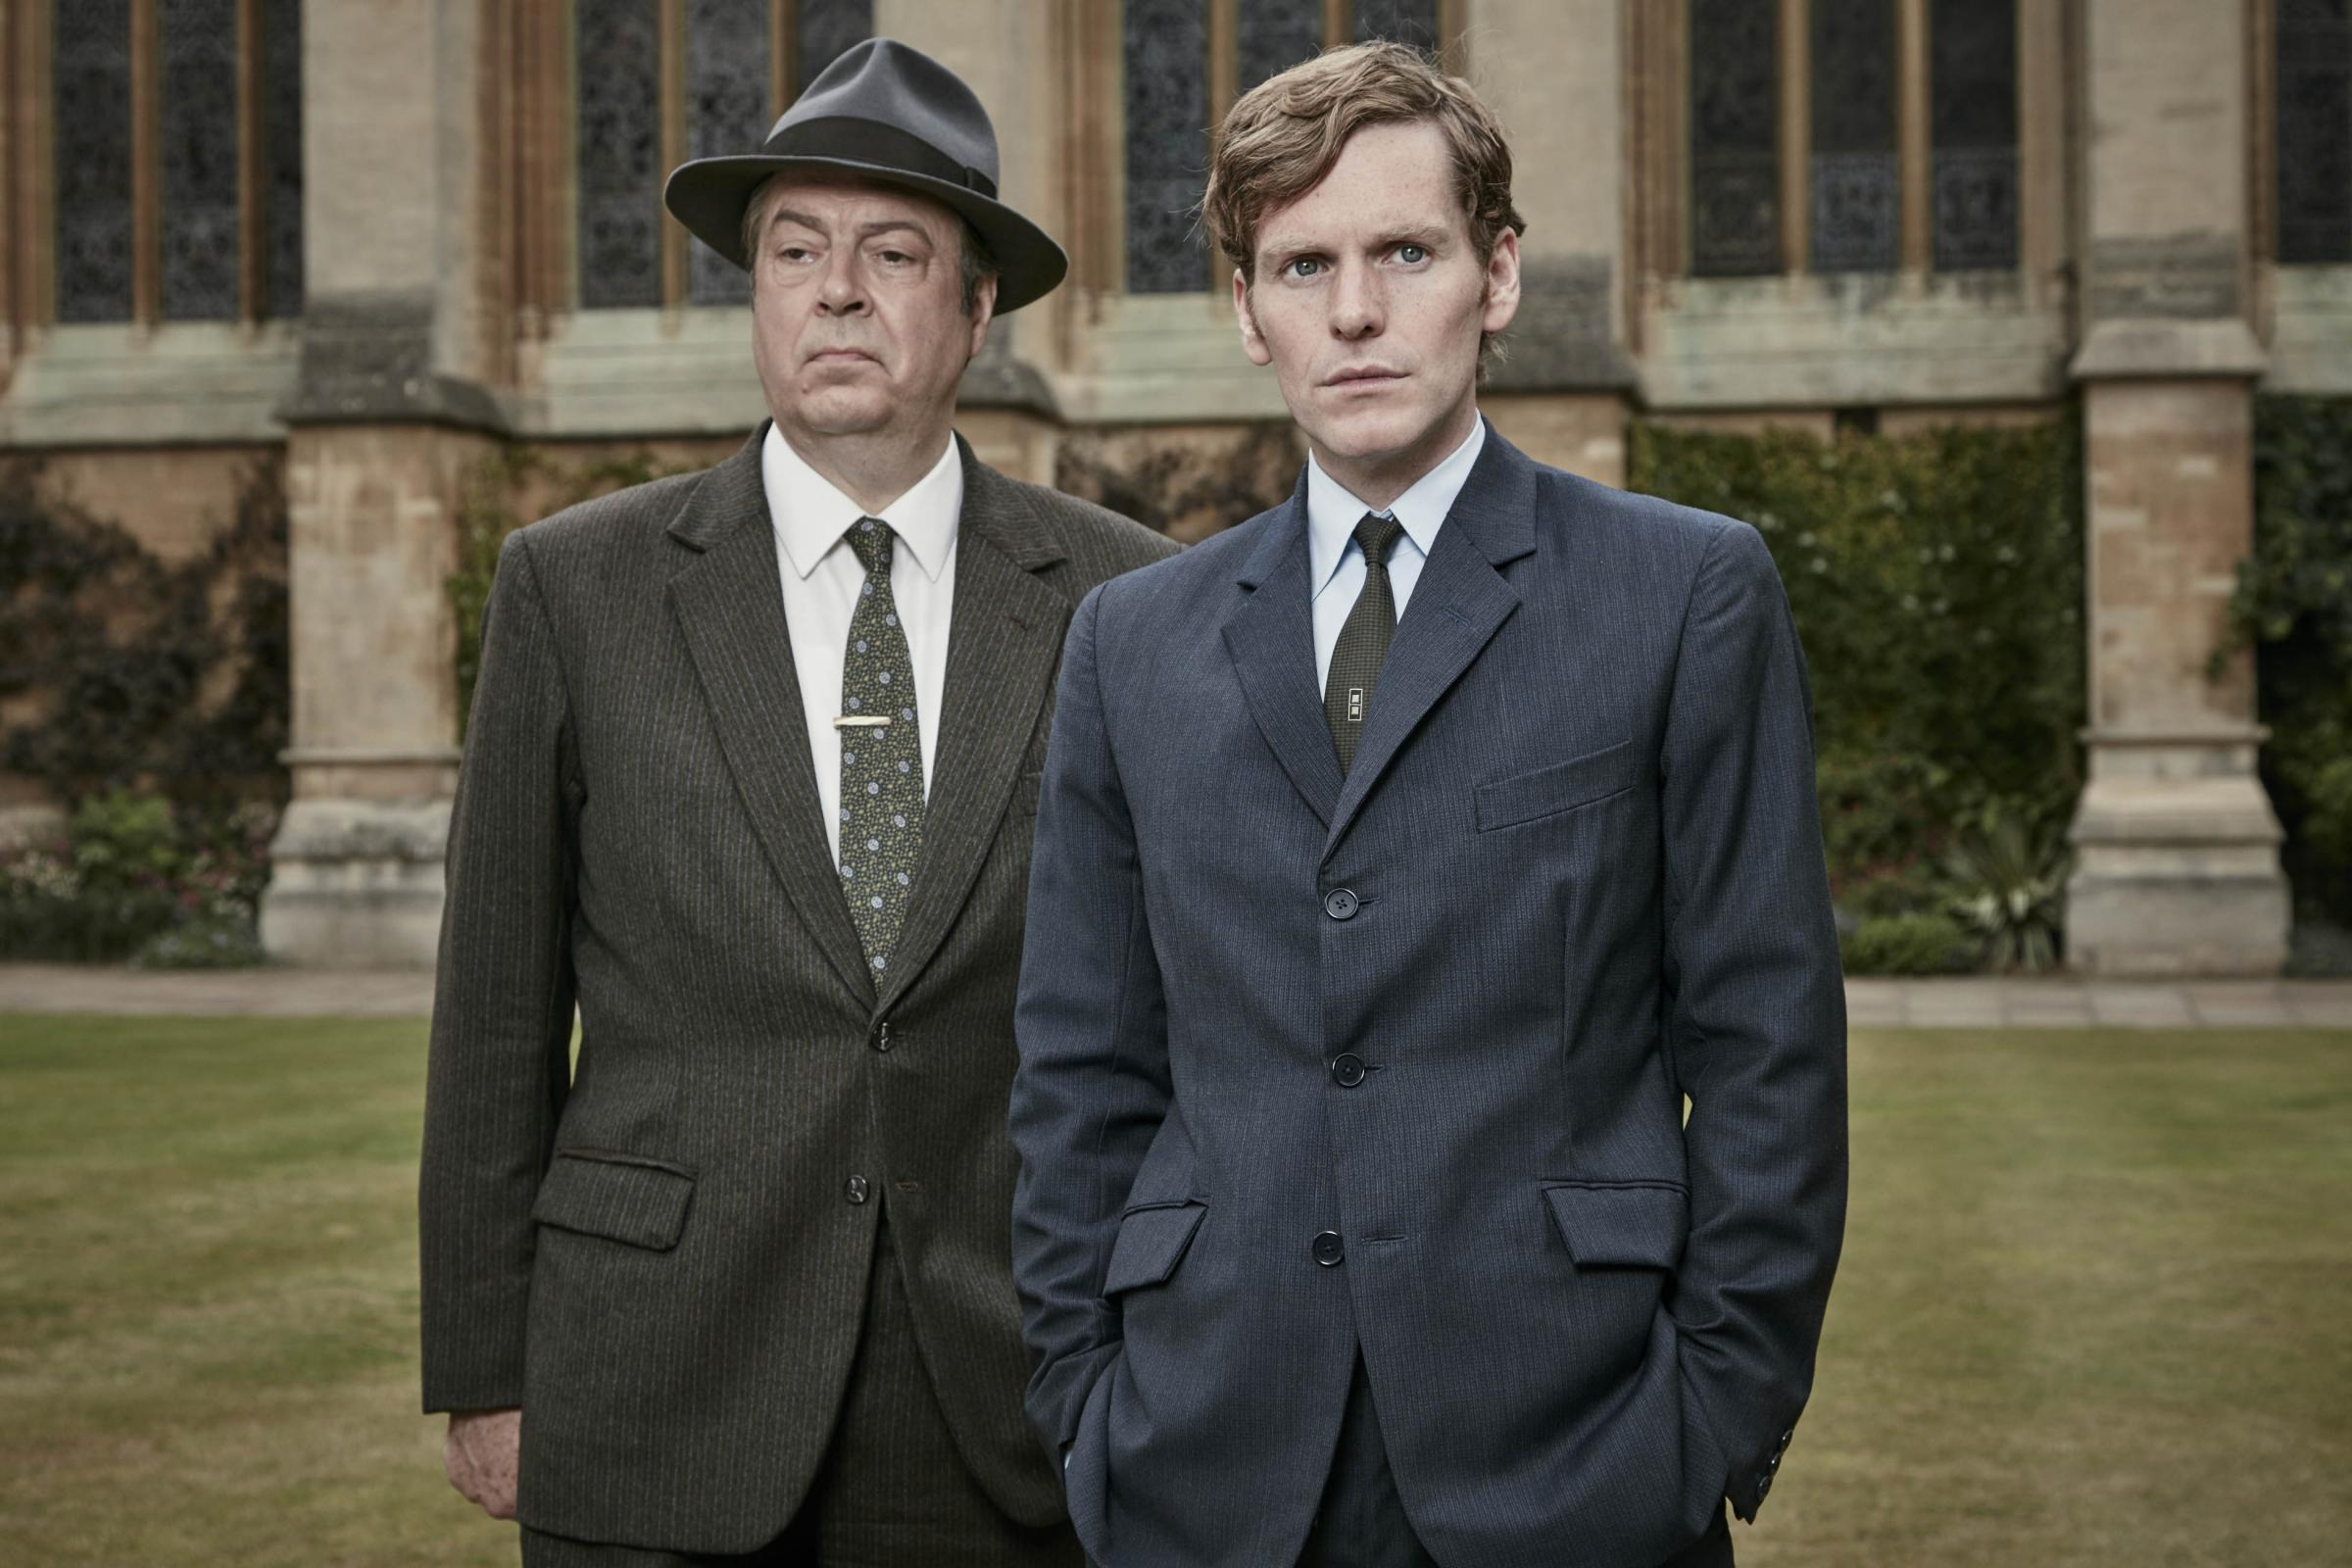 Roger Allam, who plays DI Fred Thursday, and Shaun Evans, who plays DC Endeavour Morse